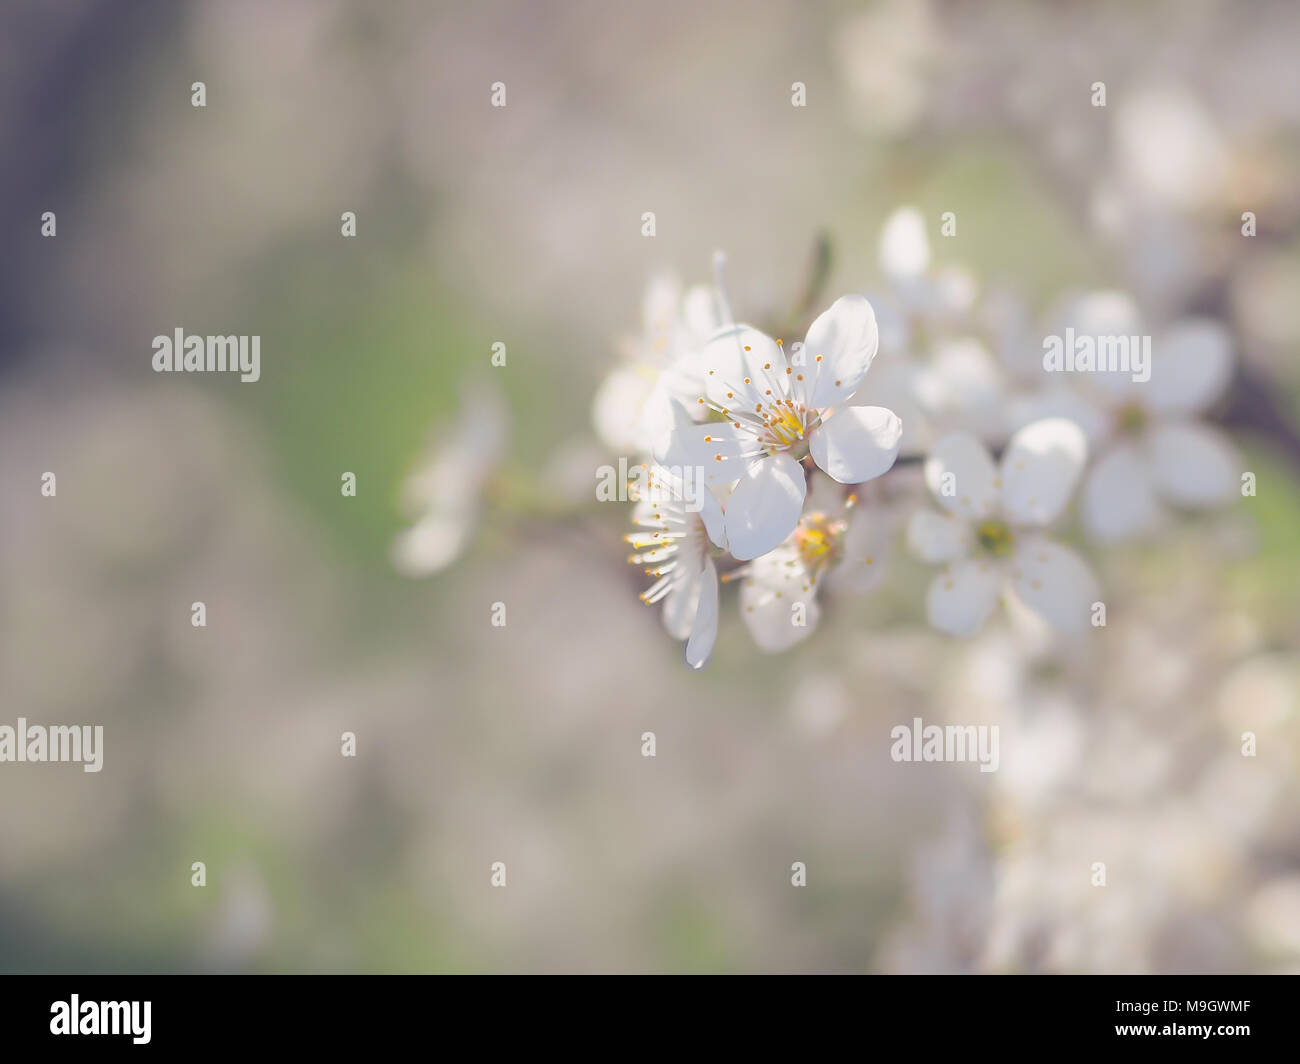 Early Spring Wild Cherry Tree Bllossom With Tiny White Flowers Stock